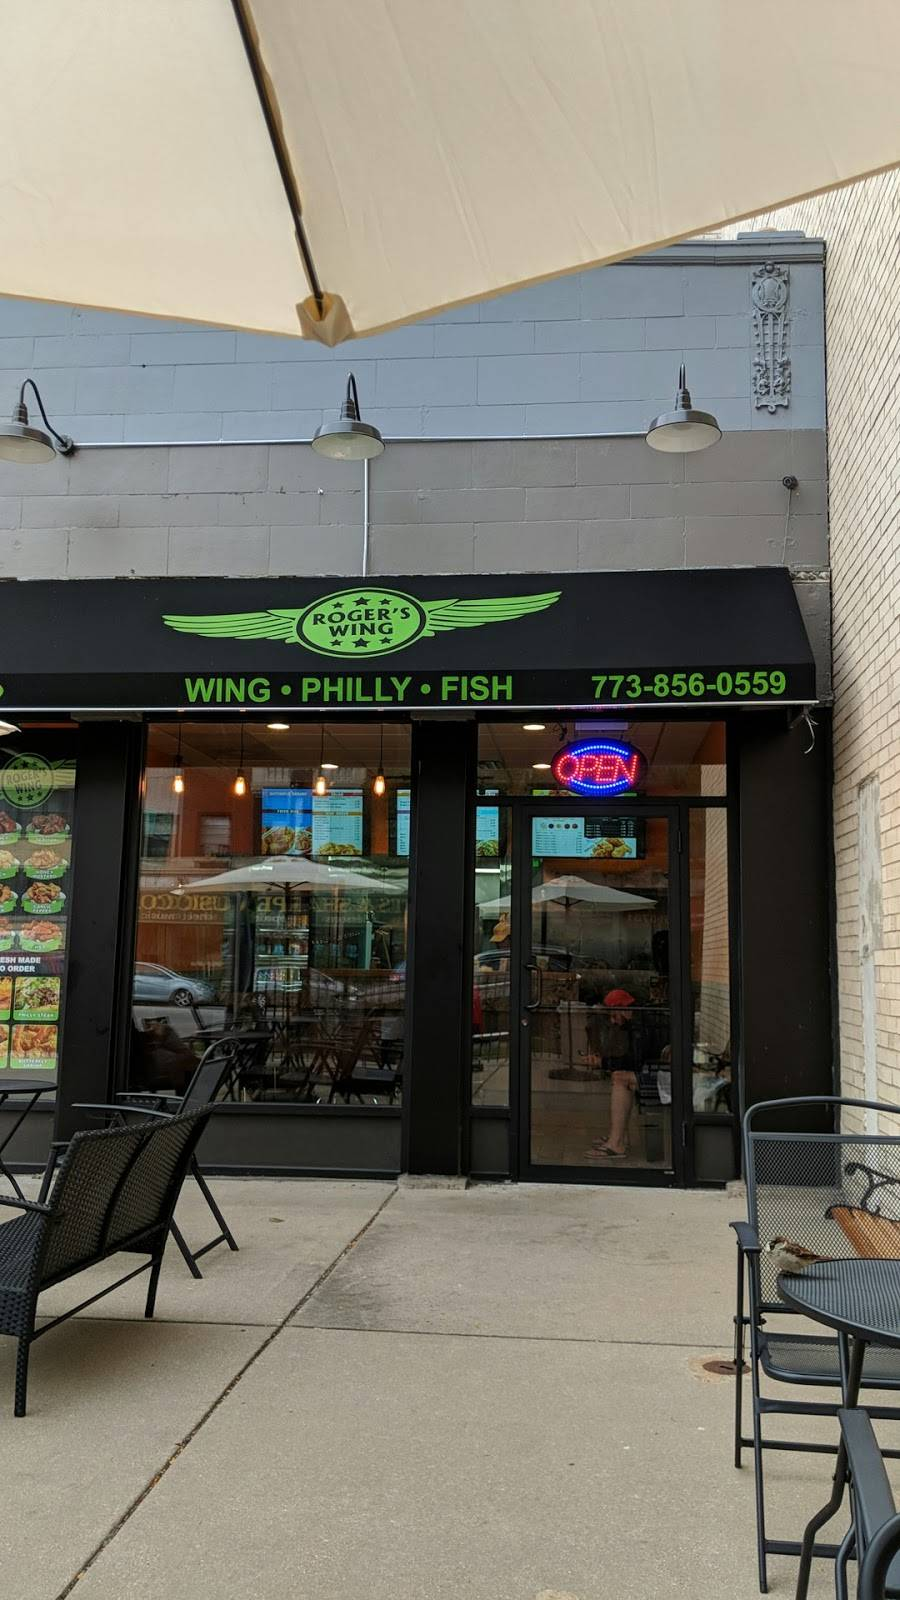 Rogers Wing   restaurant   6752 N Sheridan Rd, Chicago, IL 60626, USA   7738560559 OR +1 773-856-0559